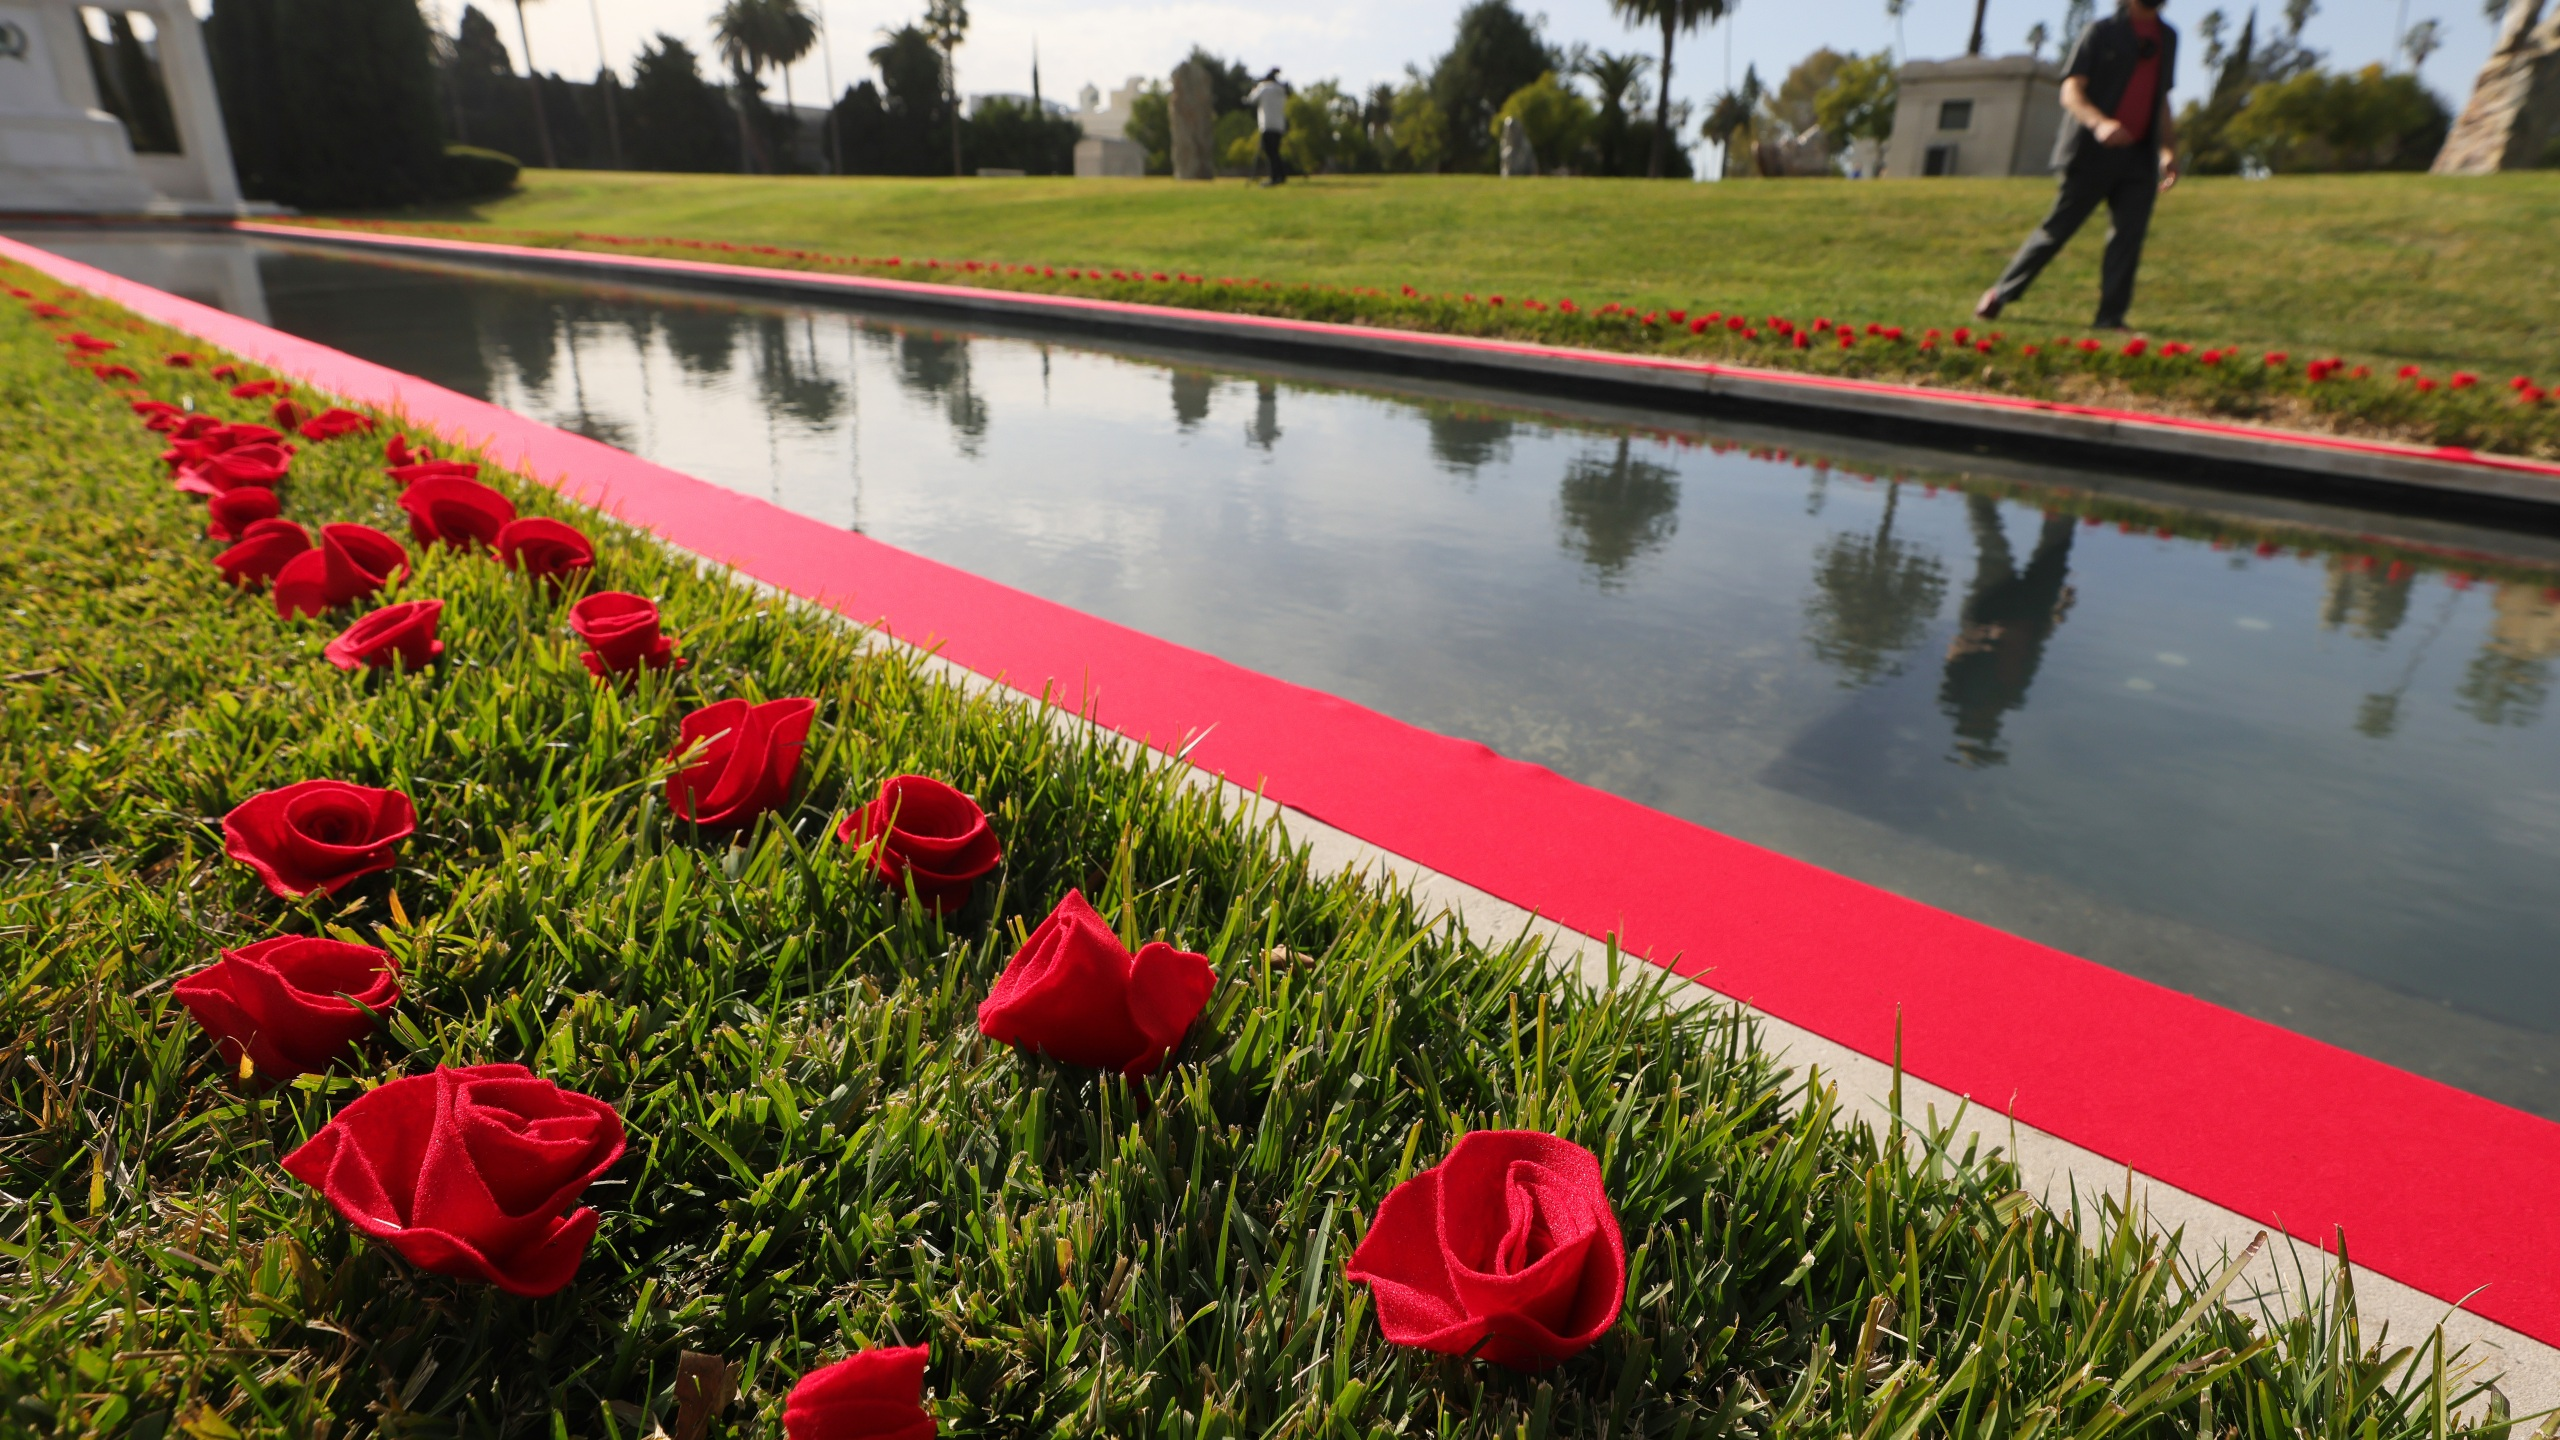 A Rose River Memorial tribute installation for the 400,000 deceased U.S. victims of the COVID-19 pandemic is seen at Hollywood Forever Cemetery on January 19, 2021 in Los Angeles, California. (Photo by Mario Tama/Getty Images)